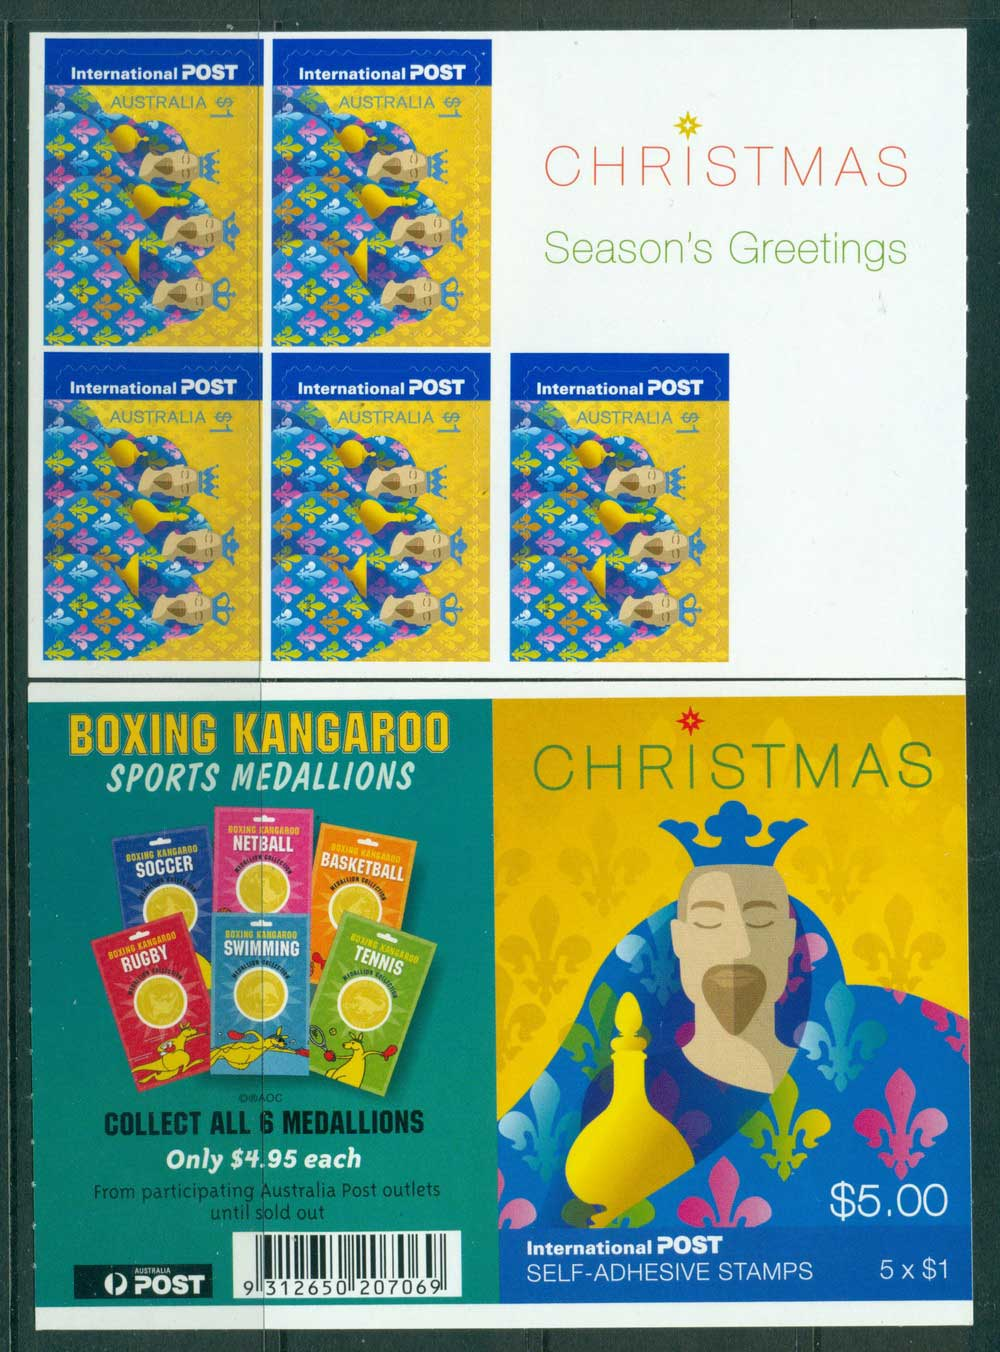 Australia 2004 $5.00 Xmas P&S Booklet B271a General MUH Lot26979